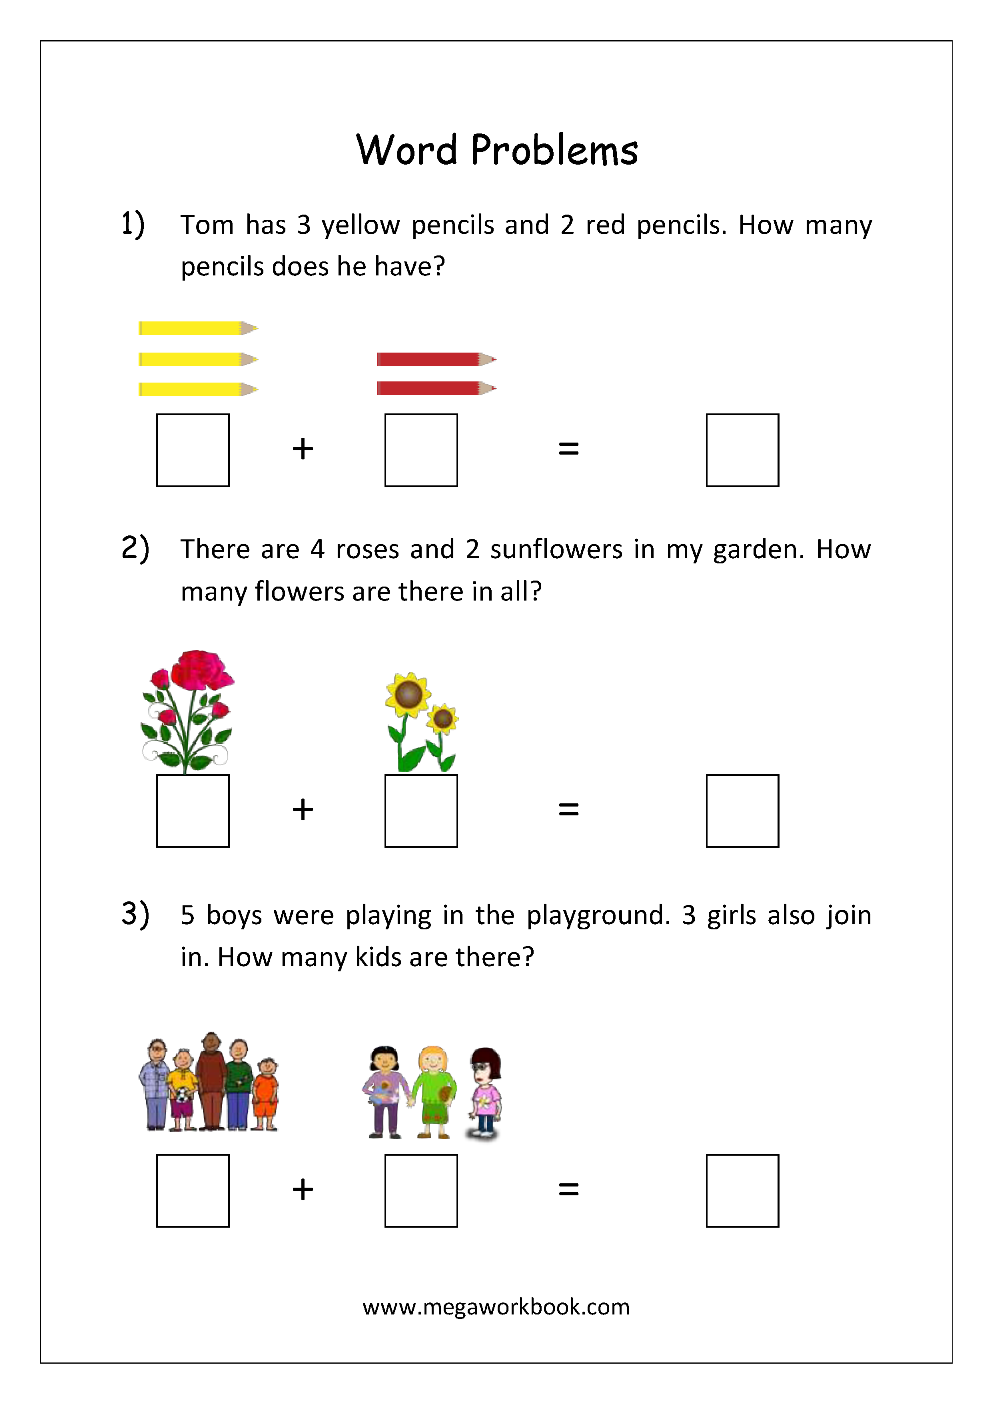 Addition And Subtraction Word Problems Worksheets For Kindergarten And Grade 1 Story Sums Story Problems Megaworkbook - 36+ Addition Word Problems Kindergarten Worksheets Pictures